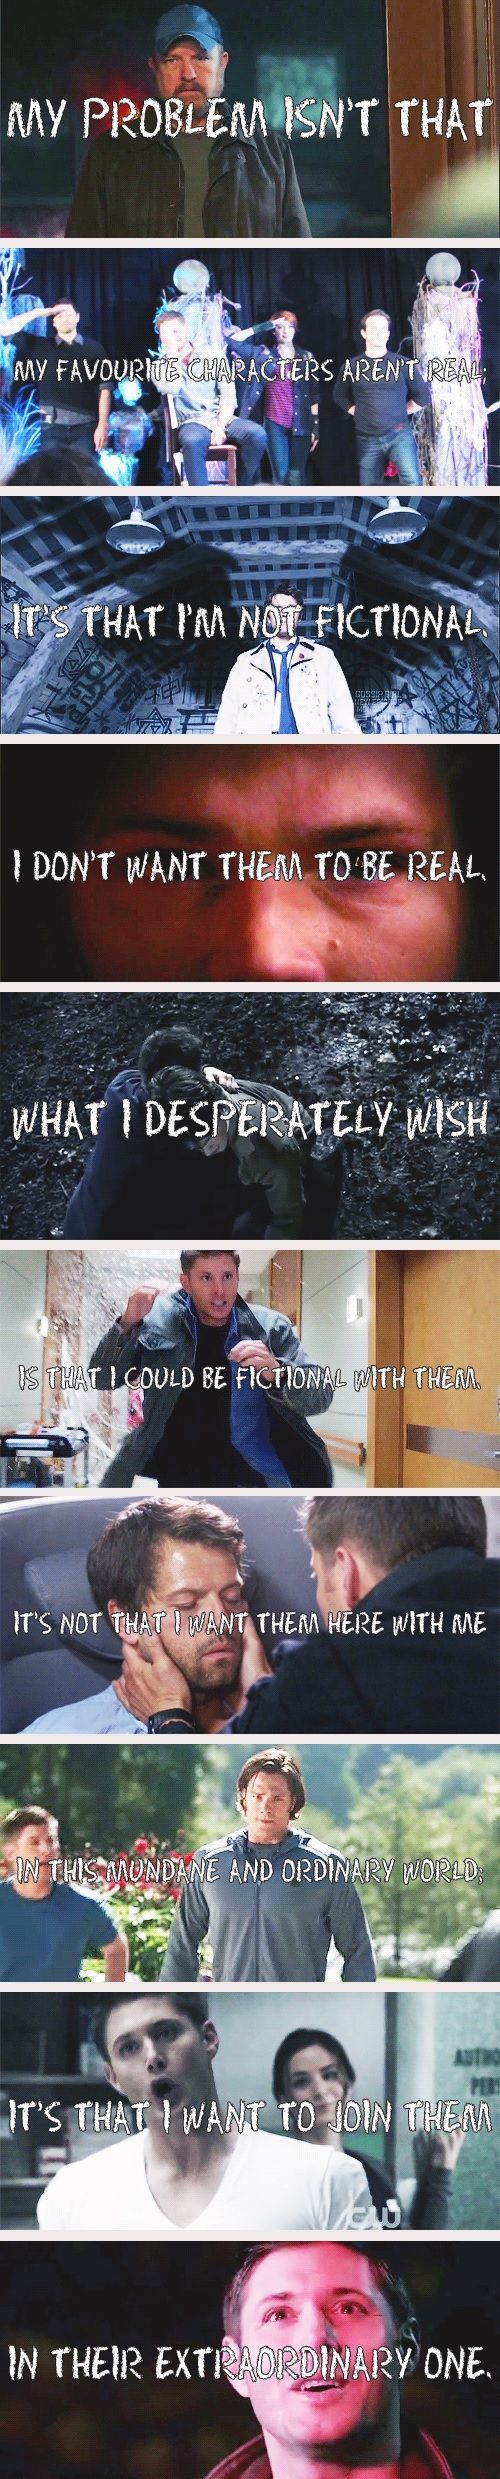 (gif set) My problem isnt that my favorite characters arent real; its that Im not fictional. [I could cry I relate to this so much.]